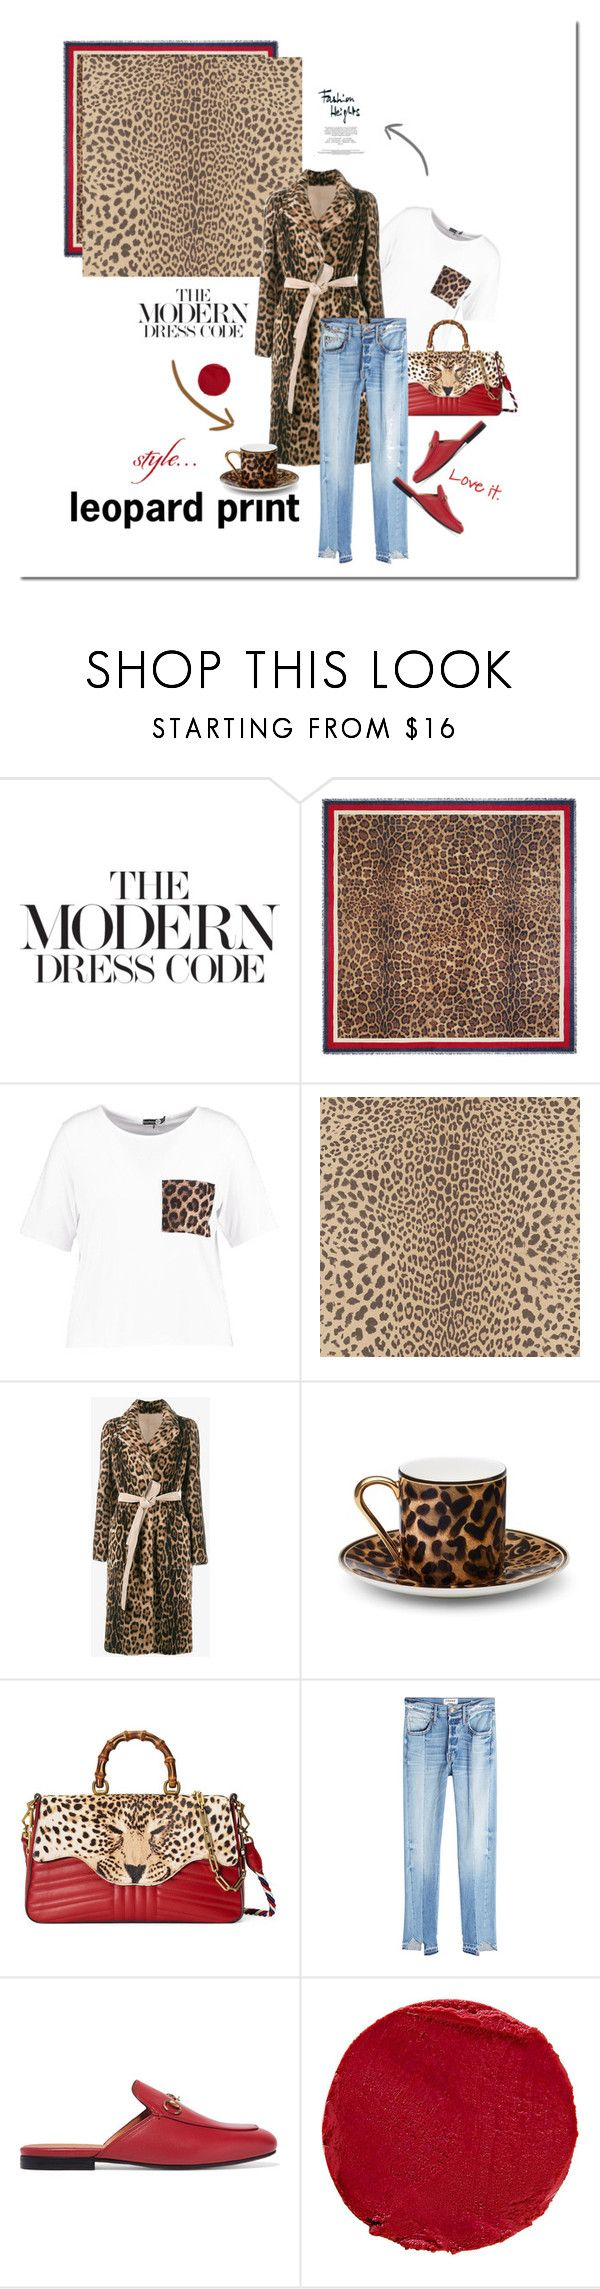 """""""""""As far as I'm concerned, leopard is a neutral."""" —Jenna Lyons"""" by elena-777s ❤ liked on Polyvore featuring Gucci, Boohoo, Graham & Brown, Yves Salomon, Asprey, Frame, Temptu, LeopardPrint, animalprint and 2017"""